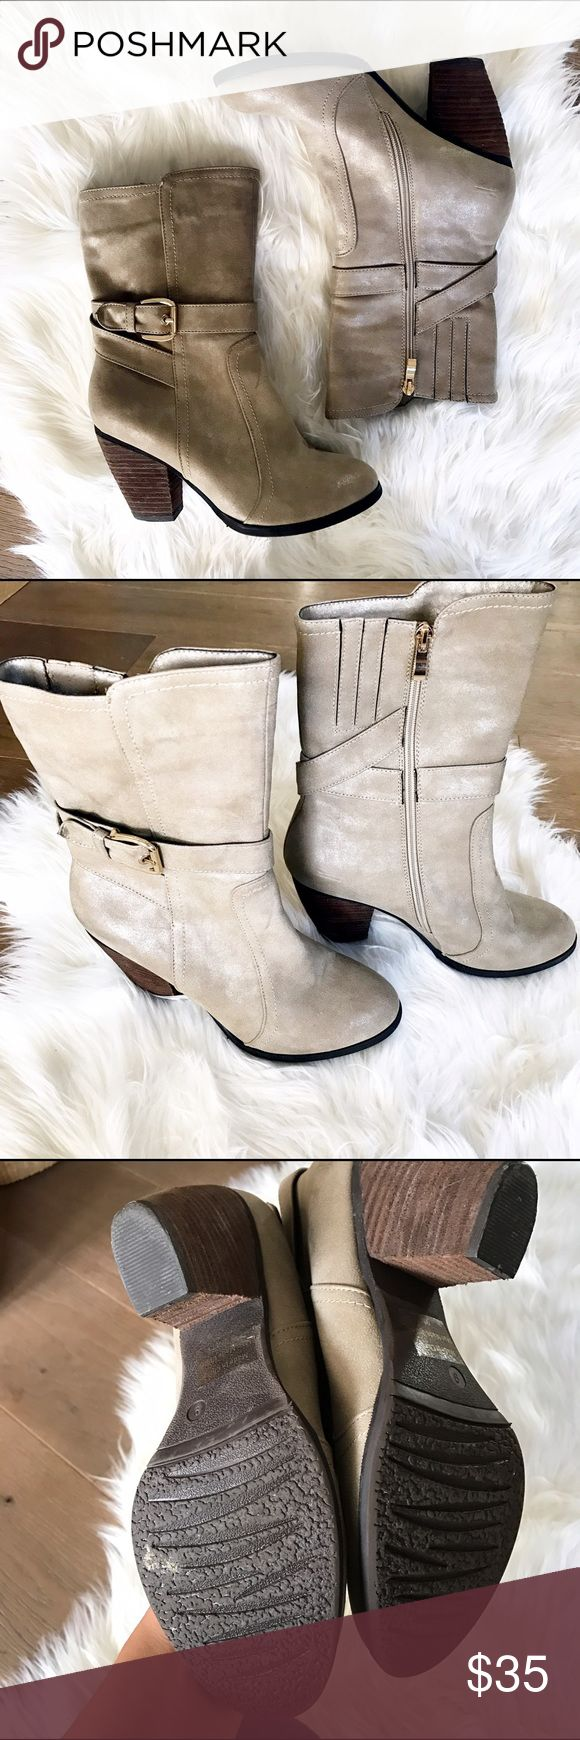 Cathy Jean beige boots size 9 Cathy Jean beige boots size 9.  Side zipper with faux buckle. Great with dress or pair with some skinny jeans. Only worn 2 times excellent Condition . Bundle and save. 👏🏻🌸🎈👍😉 Cathy Jean Shoes Heeled Boots